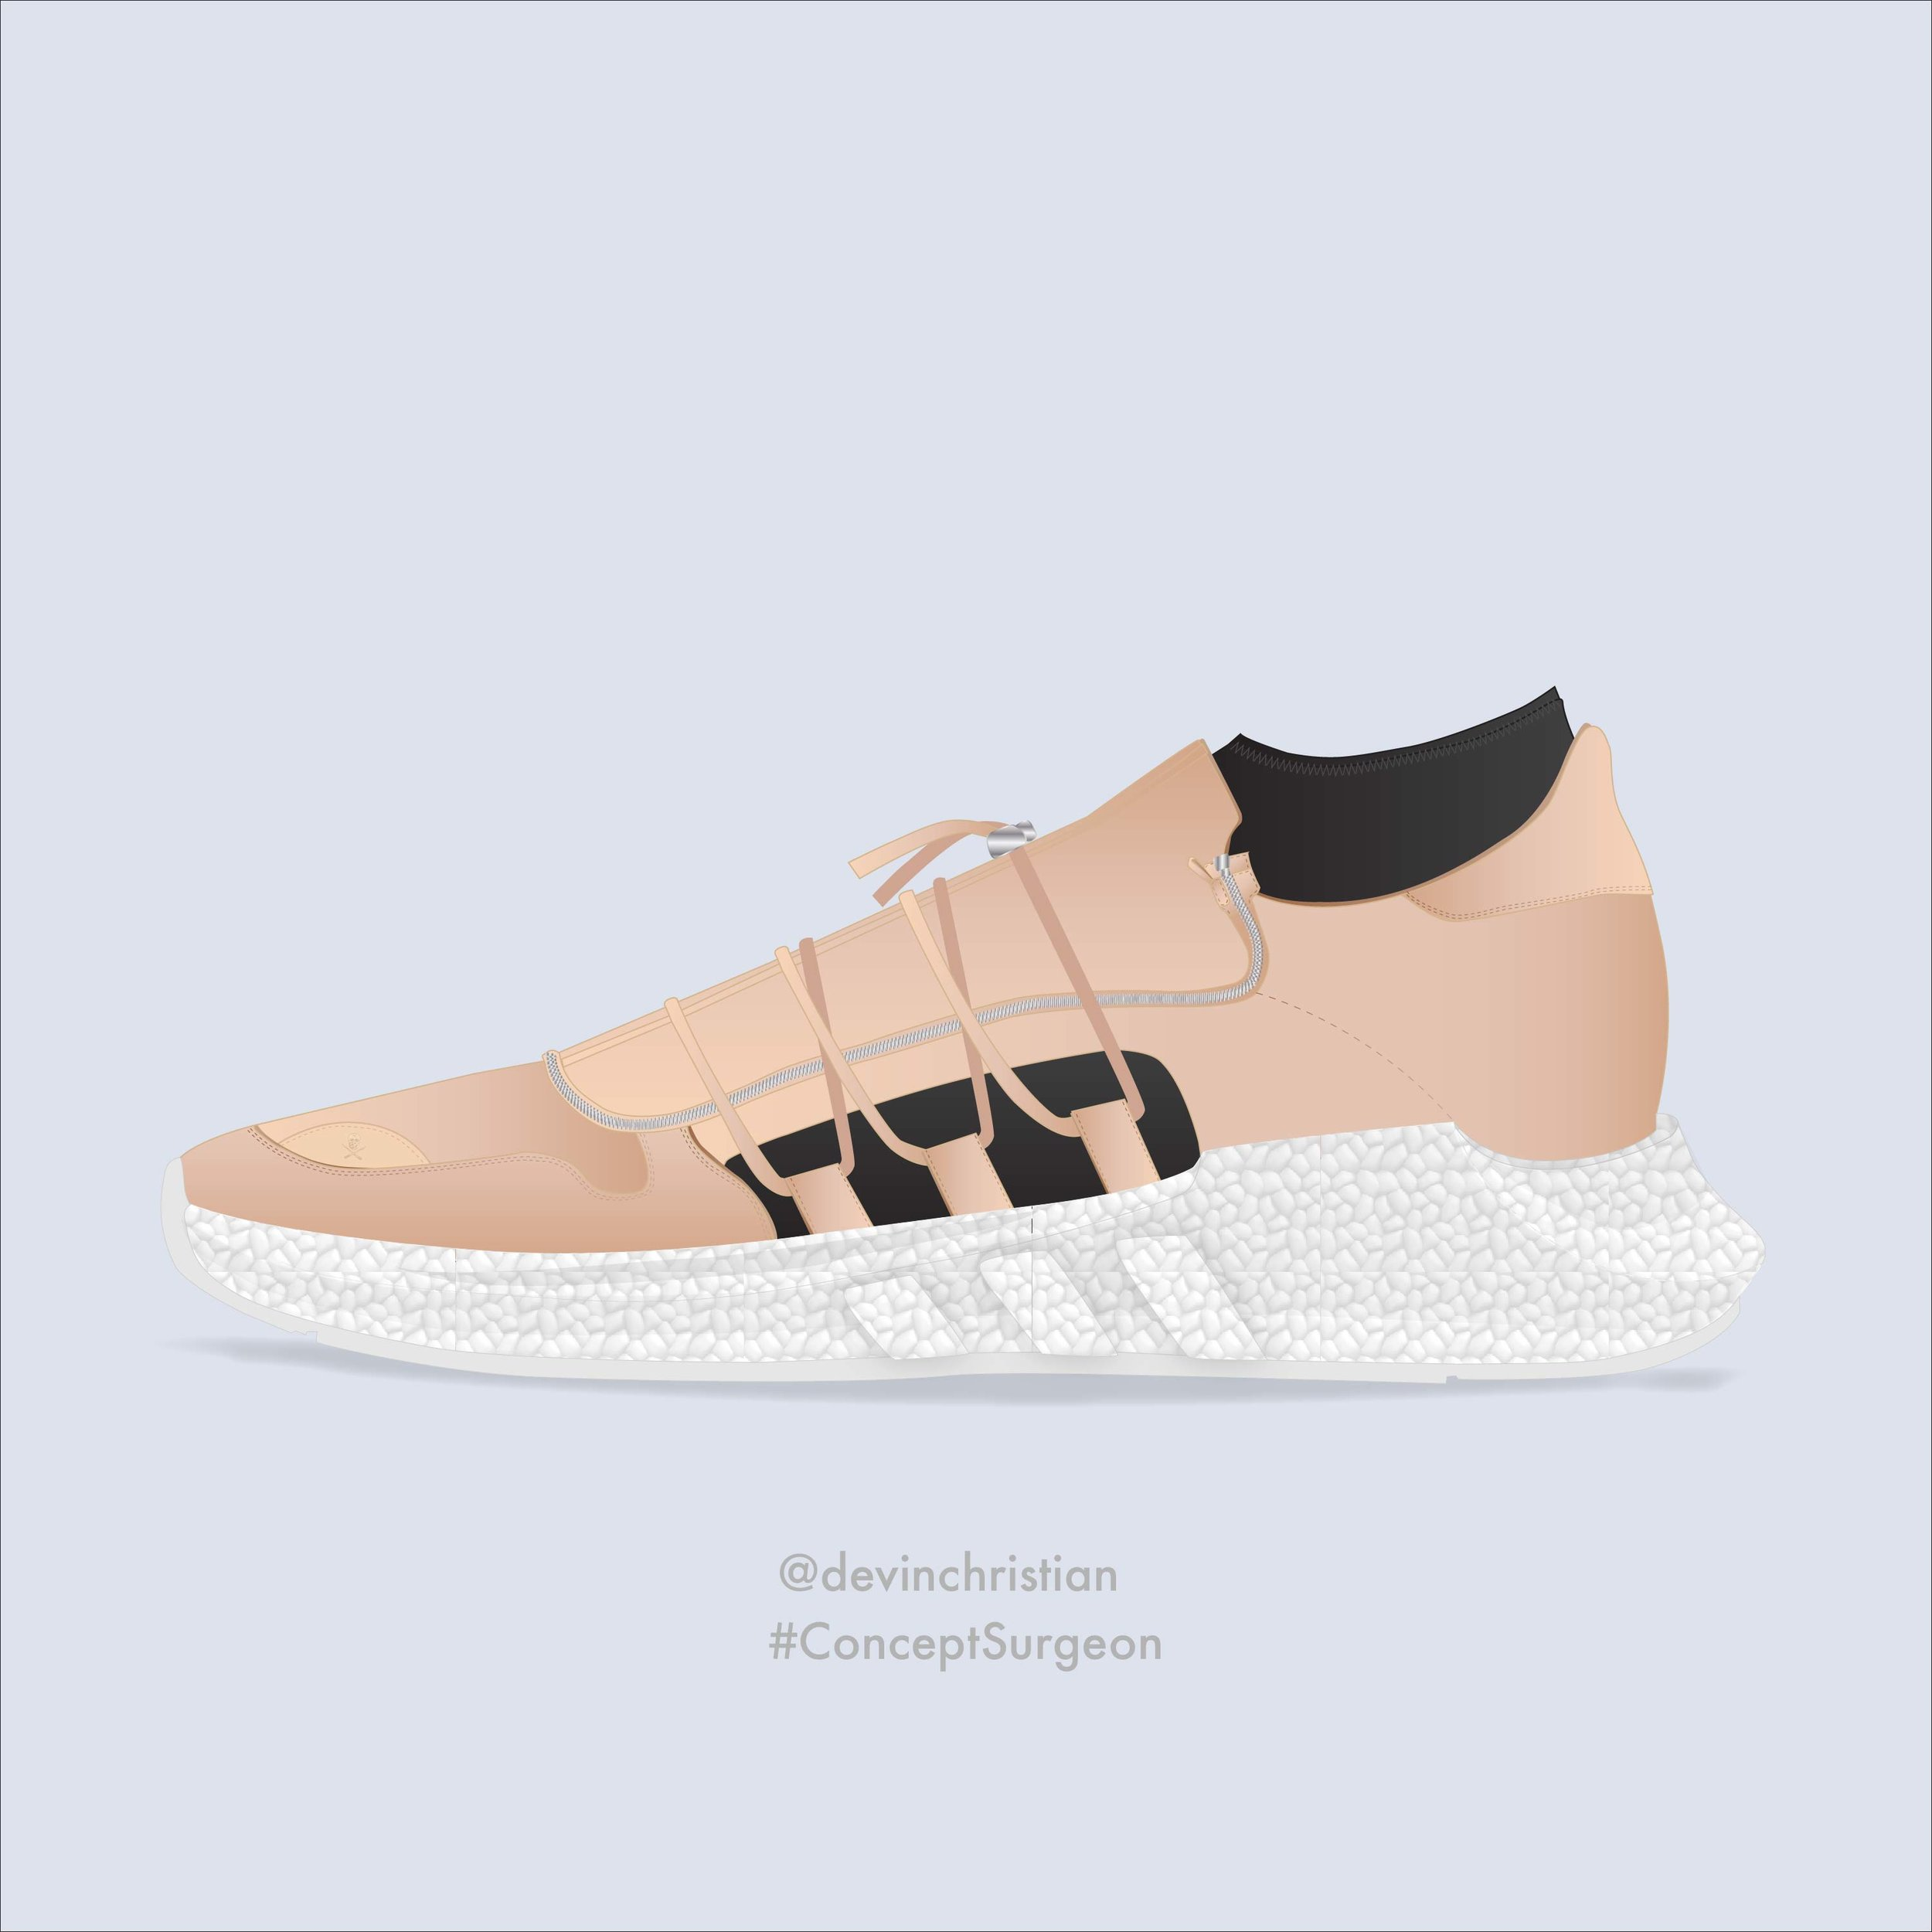 Shoe Surgeon HS Adidas Project-03.jpg